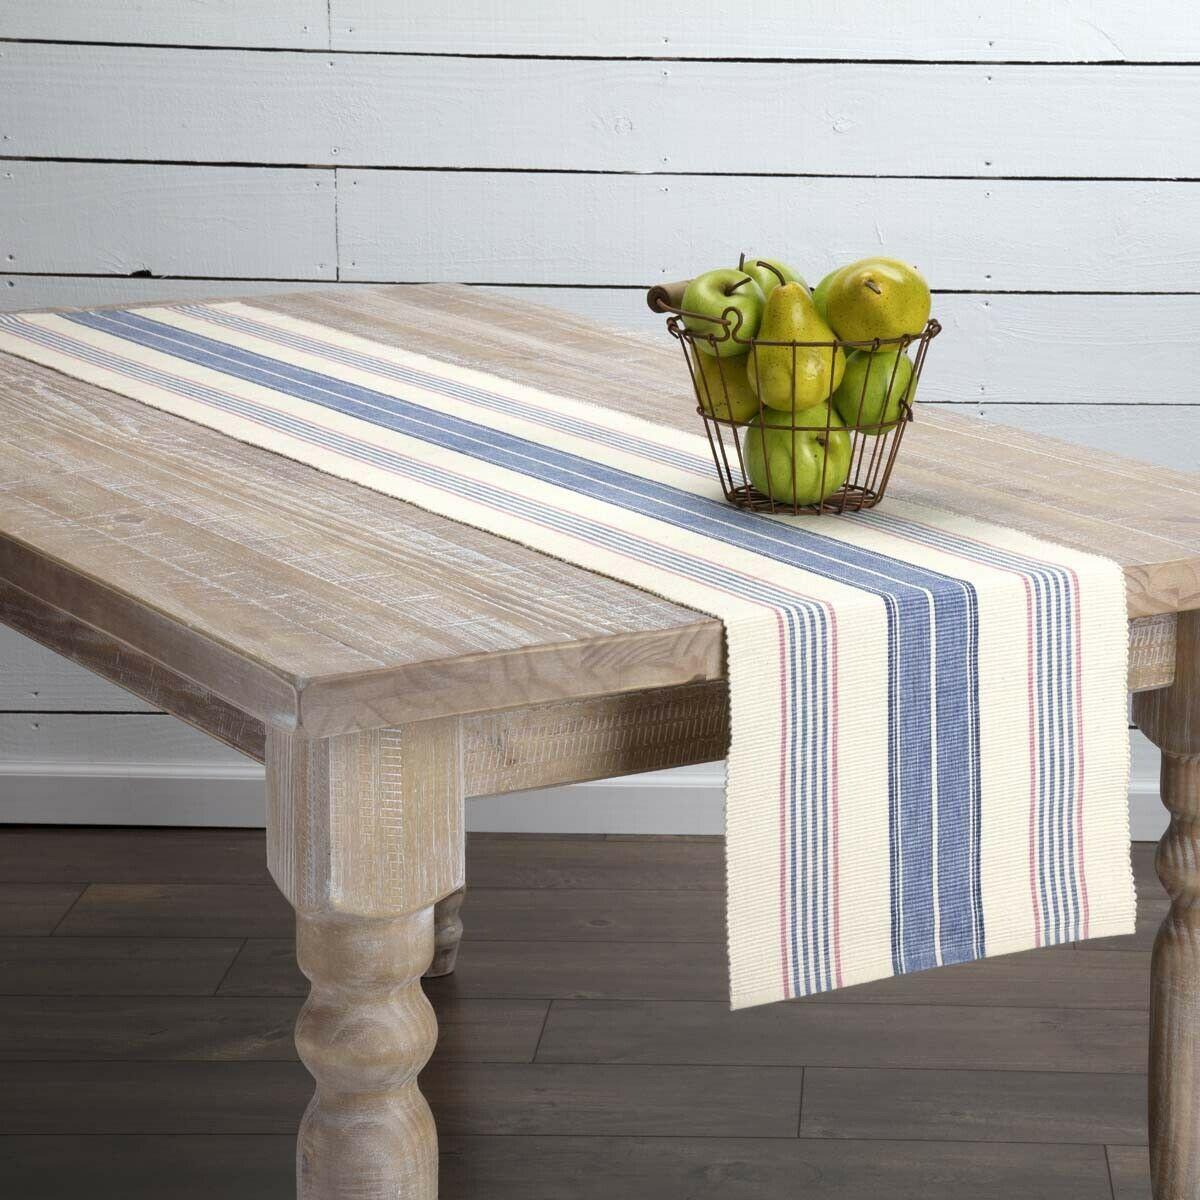 Encasa Homes Table Runner For 8 Seater Dining Restaurant Outdoors 13 X 72 Inch Roma Grey Rustic Farmhouse Decor Eco Friendly Cotton Decorative Homespun Plaid Cloth For Party Linen Table Accessories Food